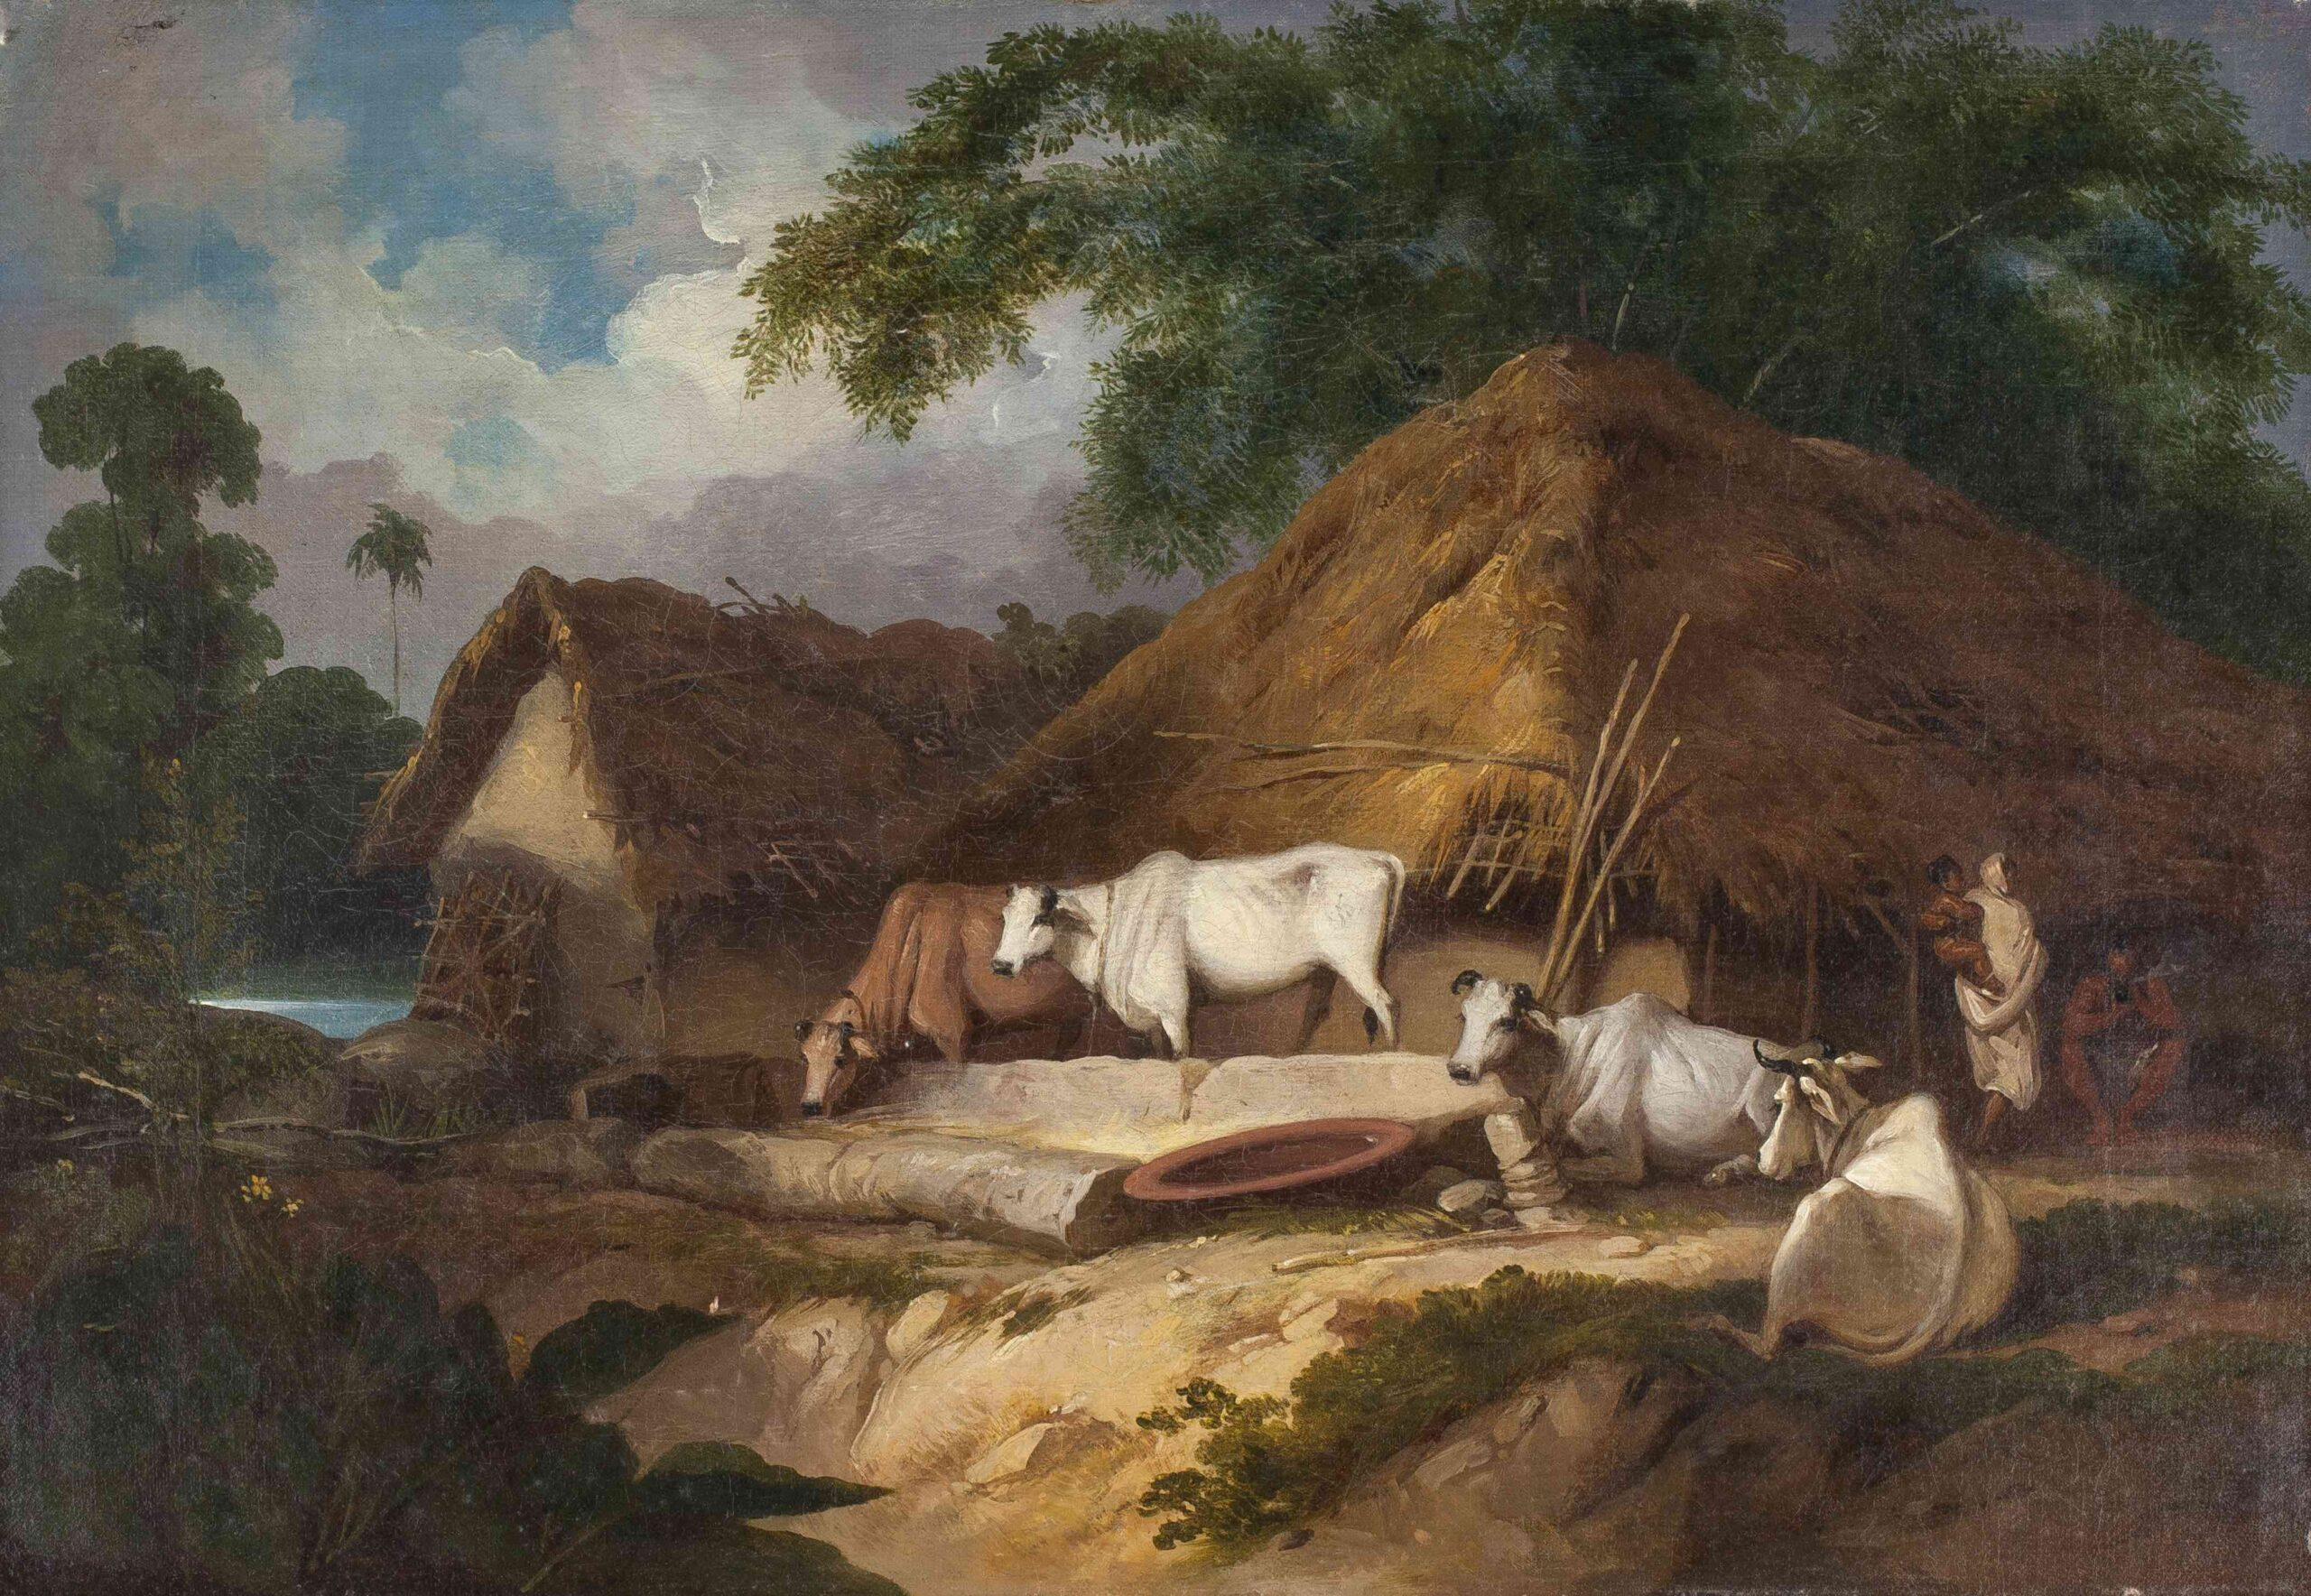 George Chinnery (1774 - 1852) Bengal village scene with cattle | Oil on canvas, 15 x 22 in (38 x 55.8 cm)